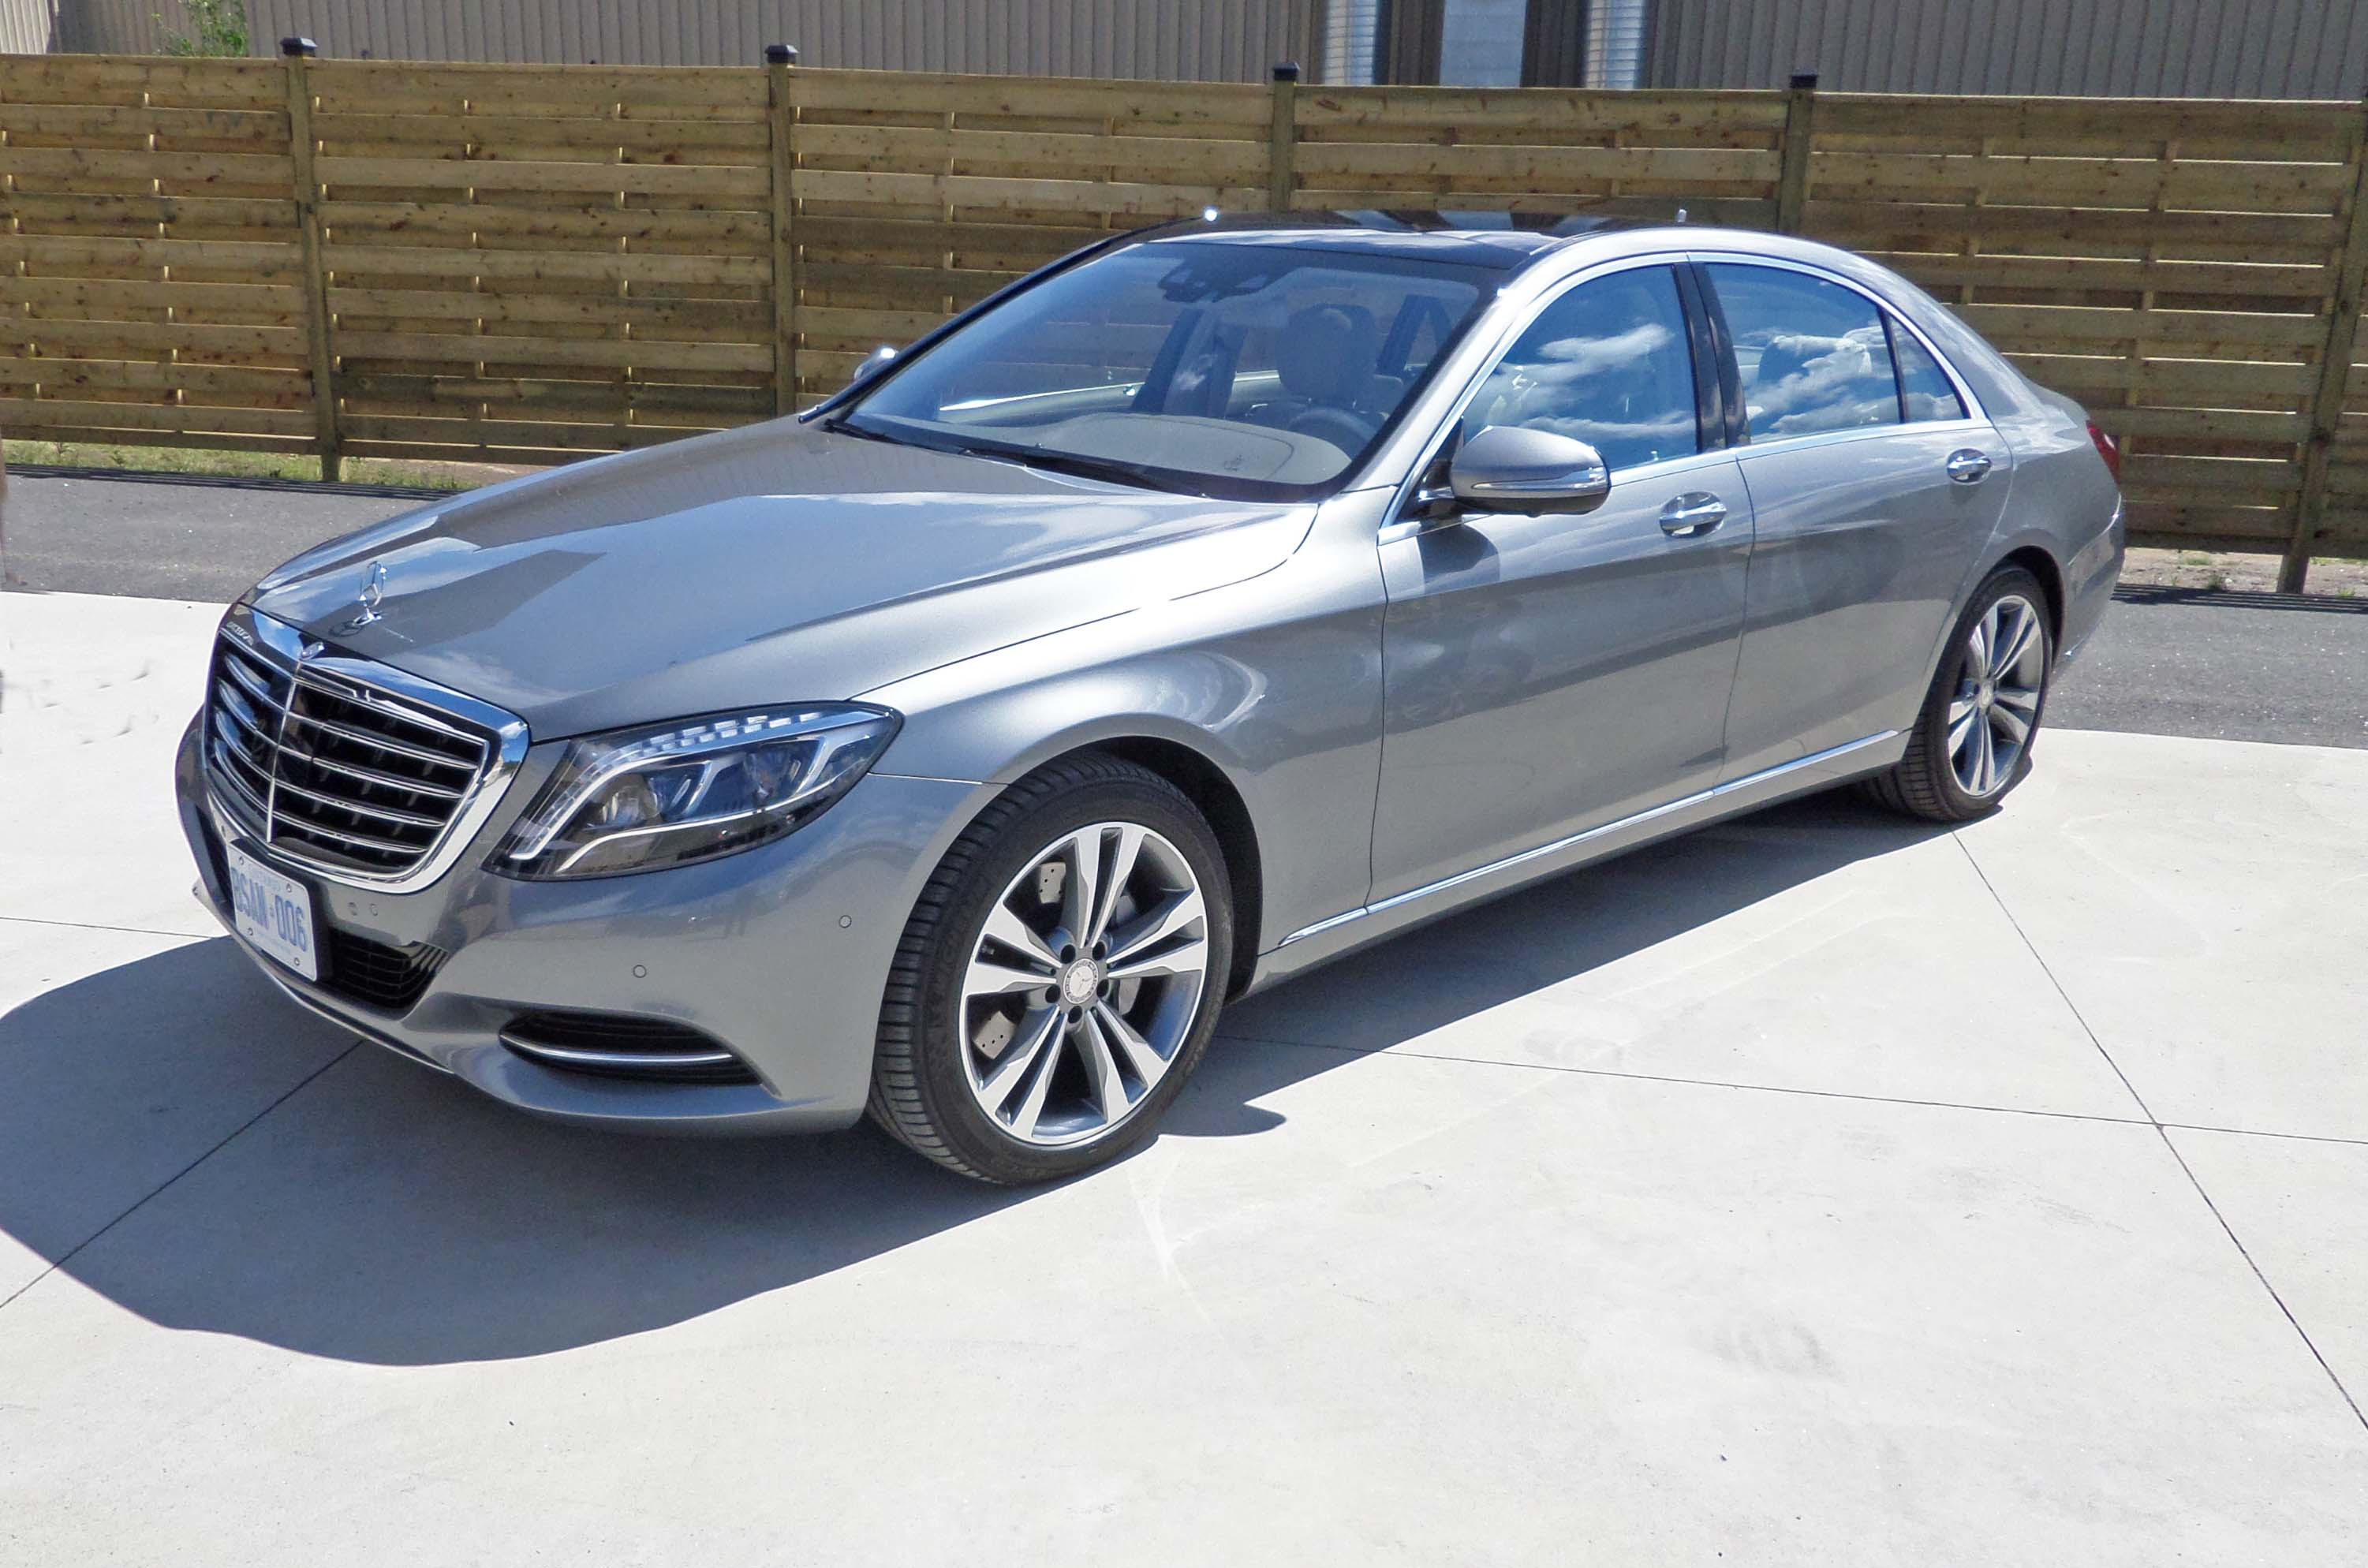 2014 Mercedes-Benz S-Class Test Drive | Our Auto Expert